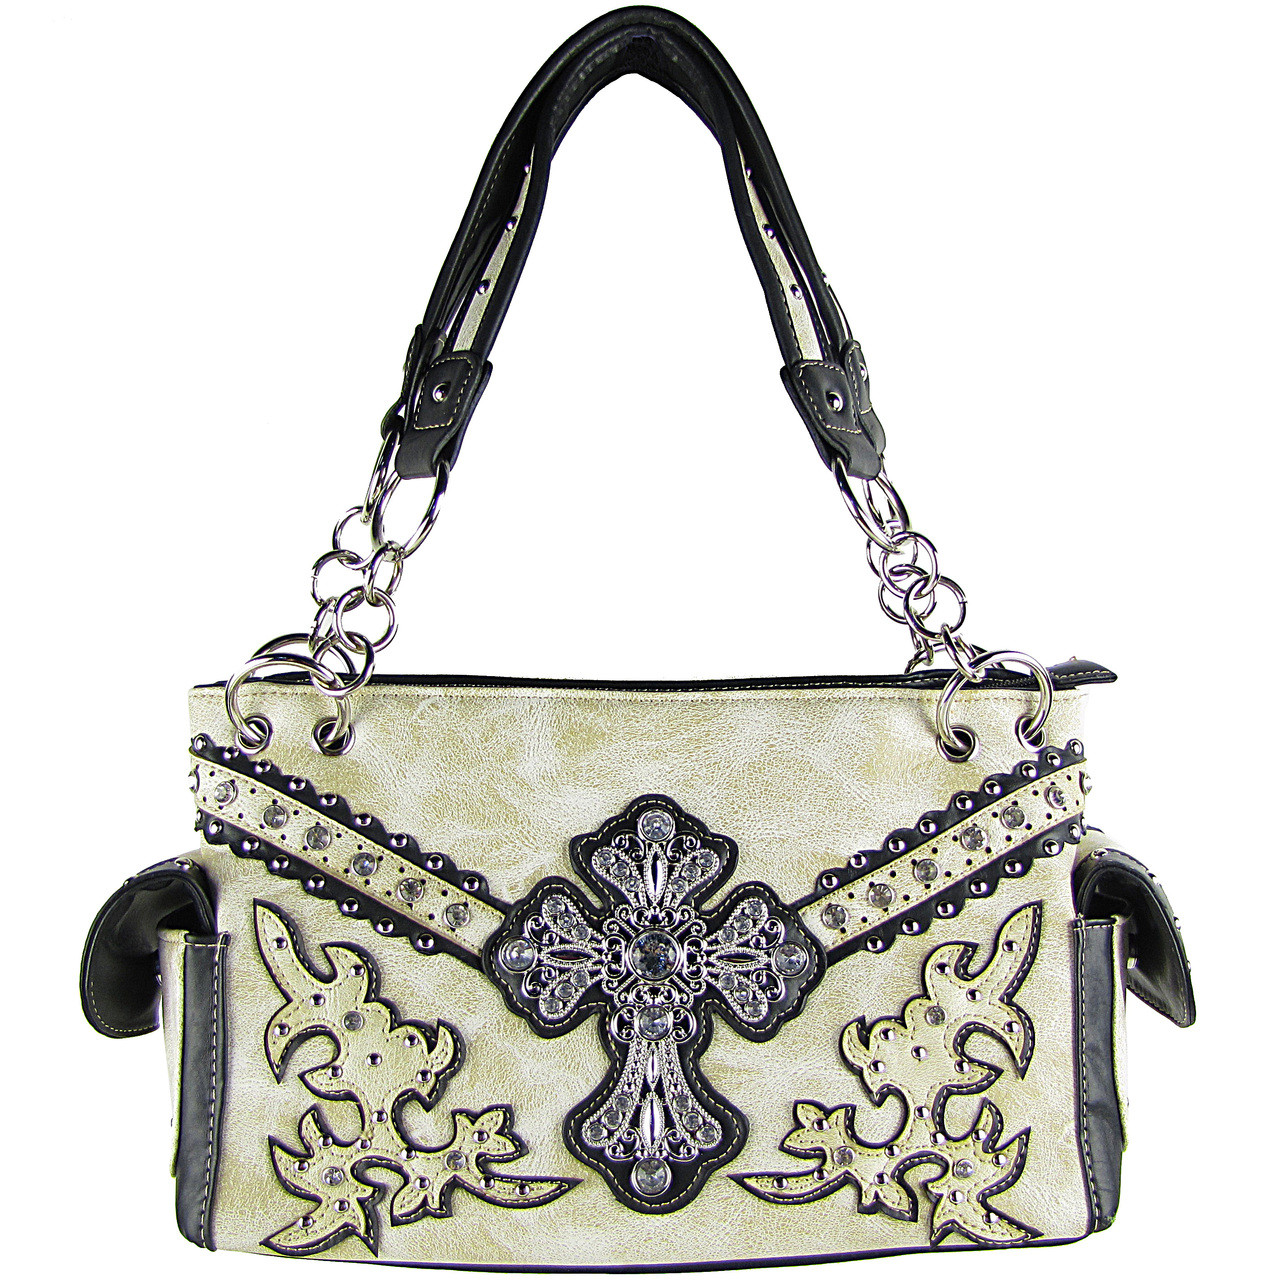 BEIGE STUDDED RHINESTONE CROSS LOOK SHOULDER HANDBAG HB1-72LCRBEI